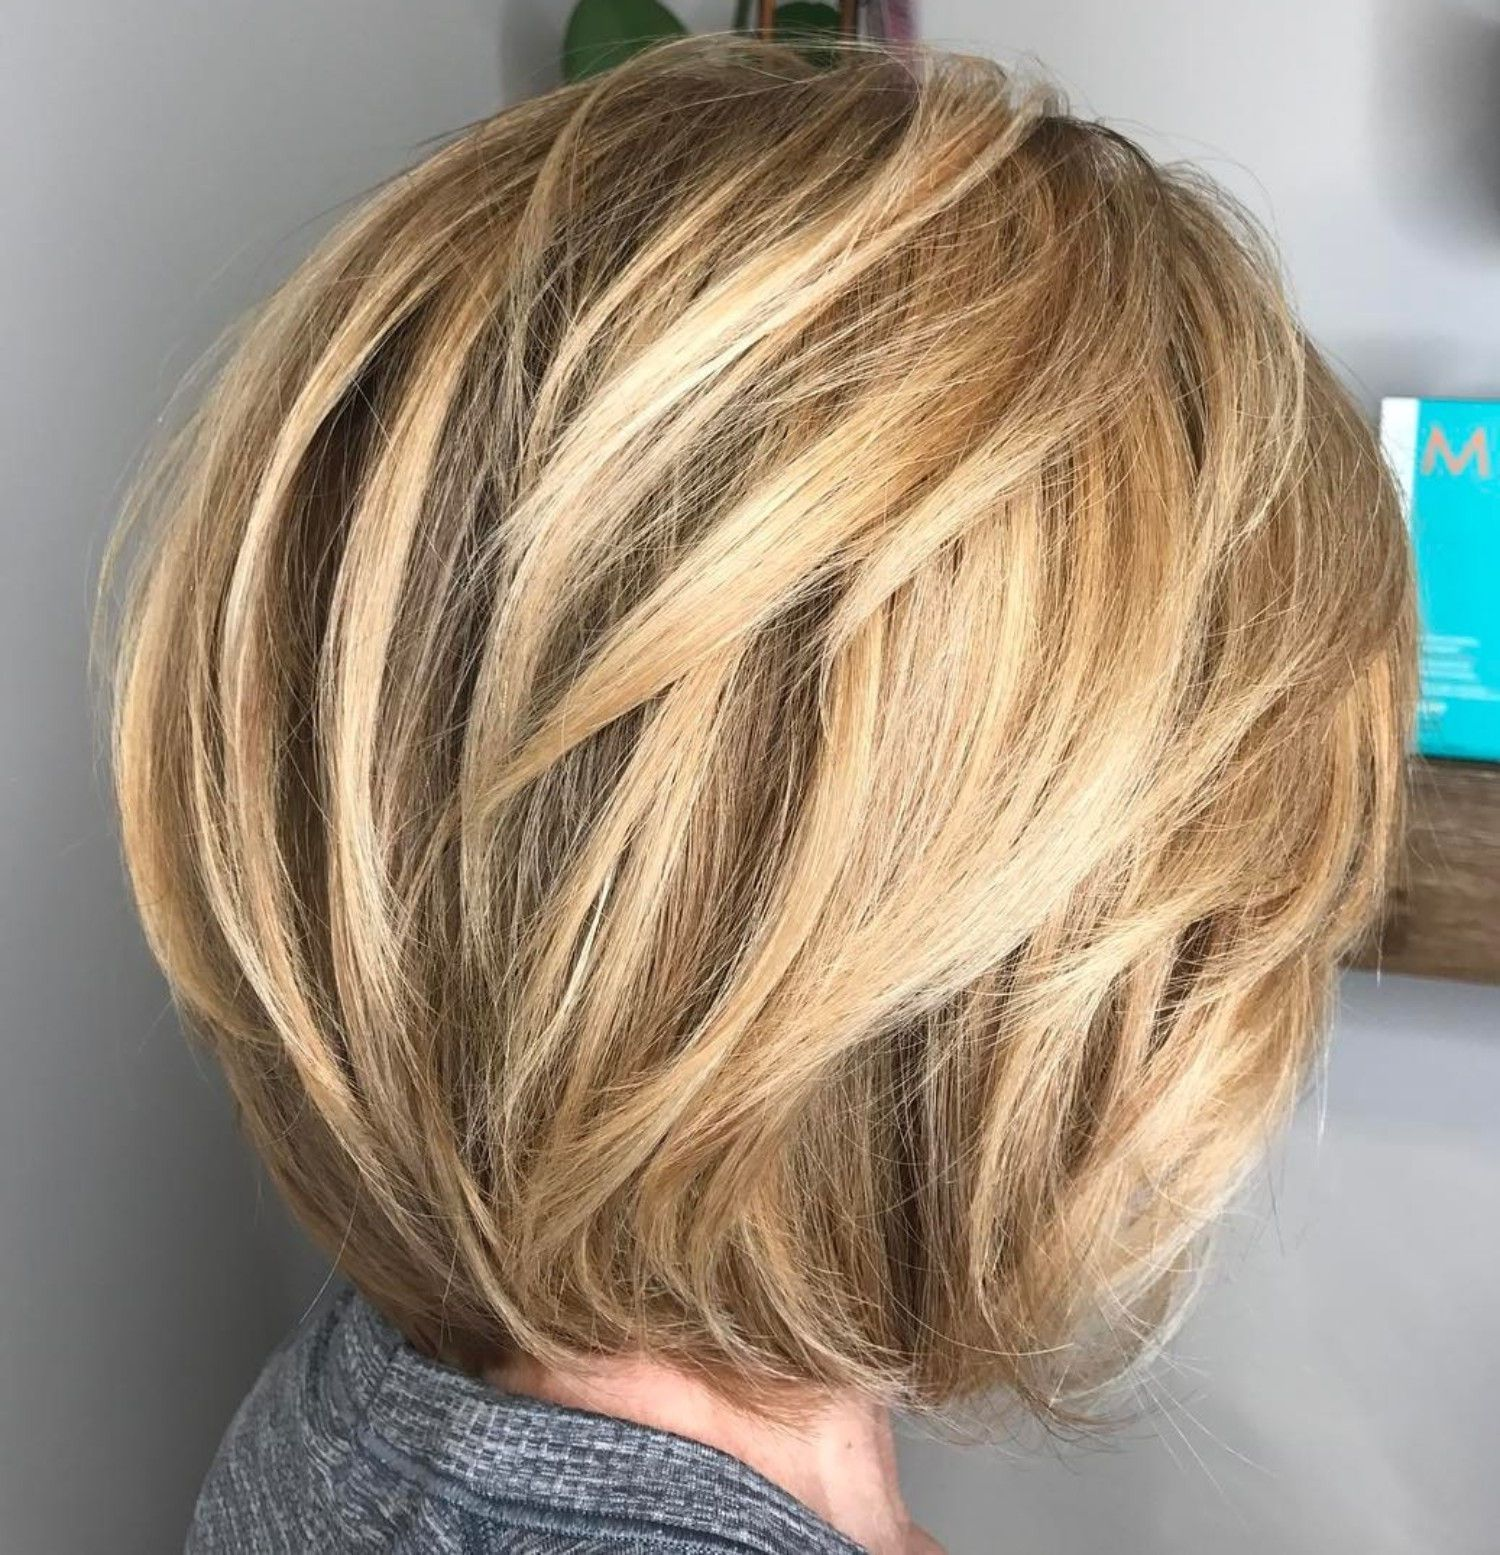 70 Cute and Easy-To-Style Short Layered Hairstyles   Short ...